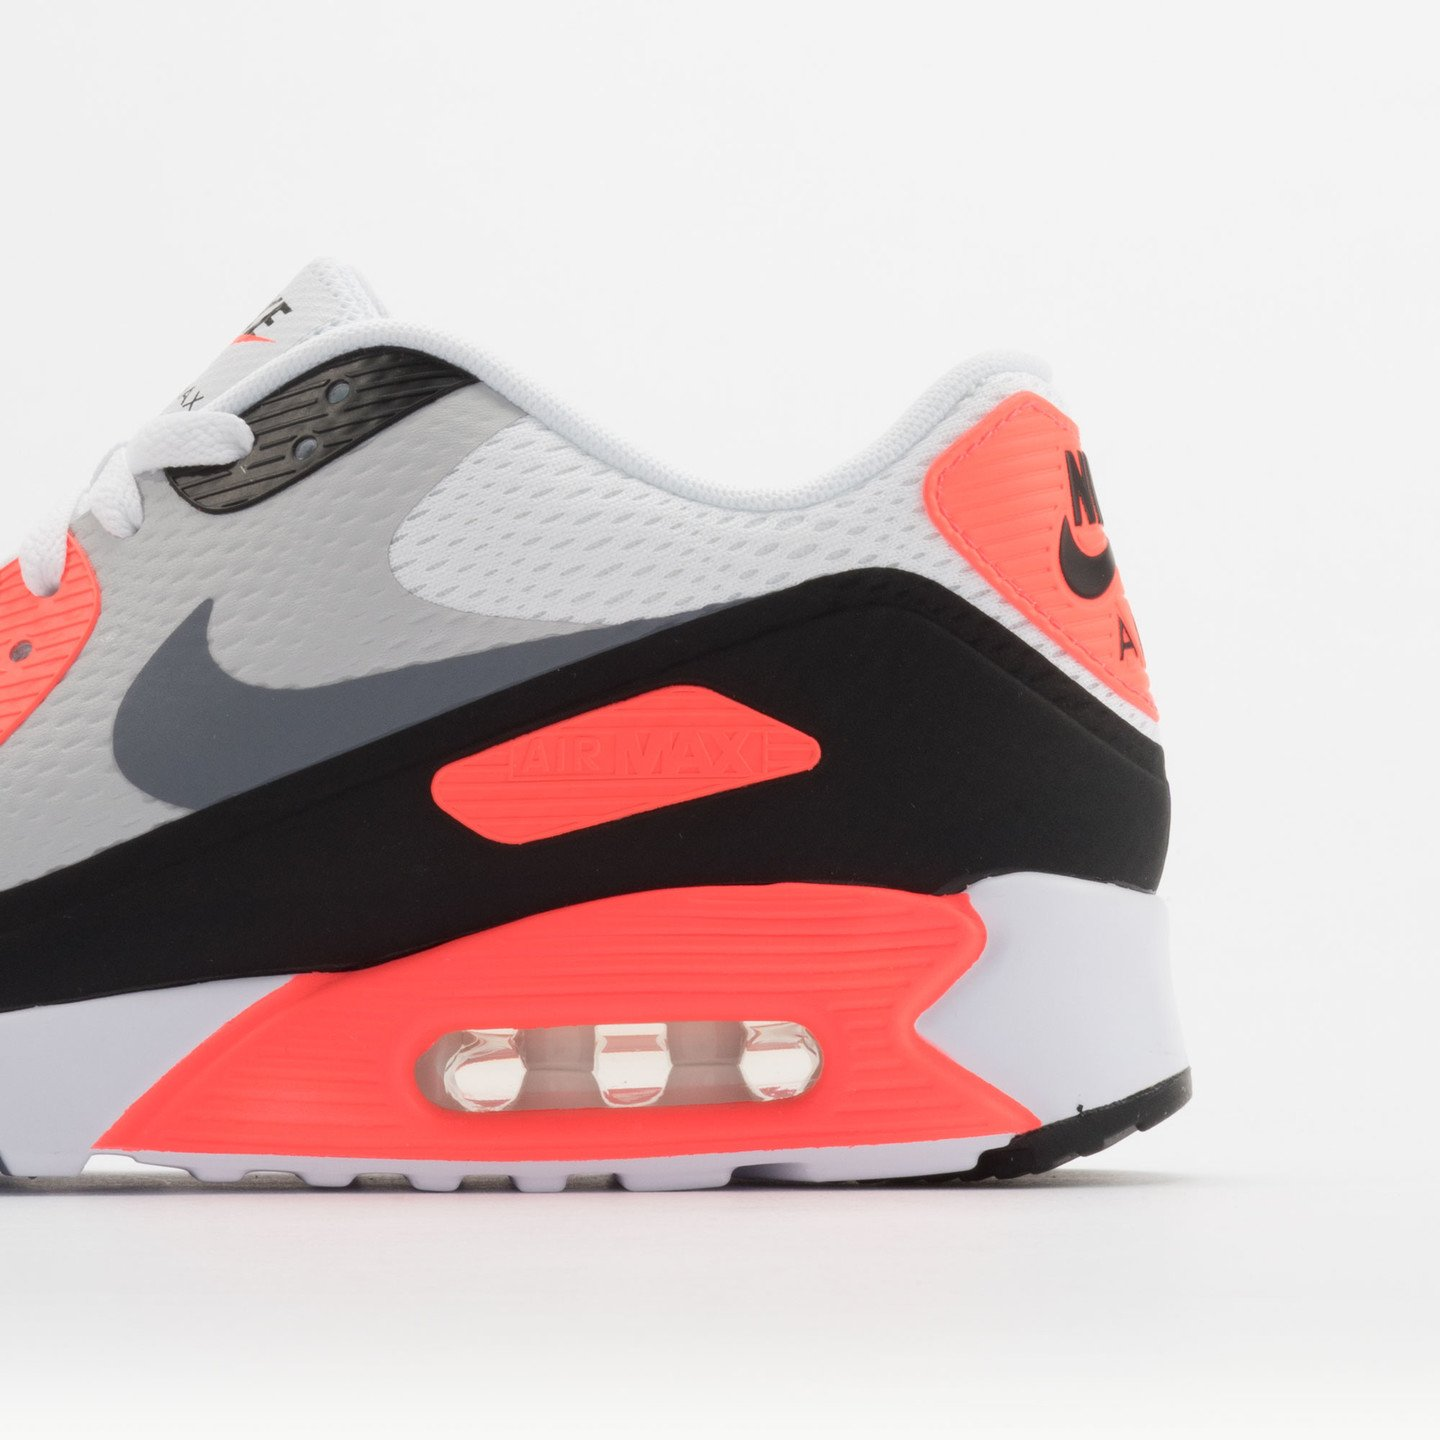 Nike Air Max 90 OG Essential White / Black / Infrared 819474-106-45